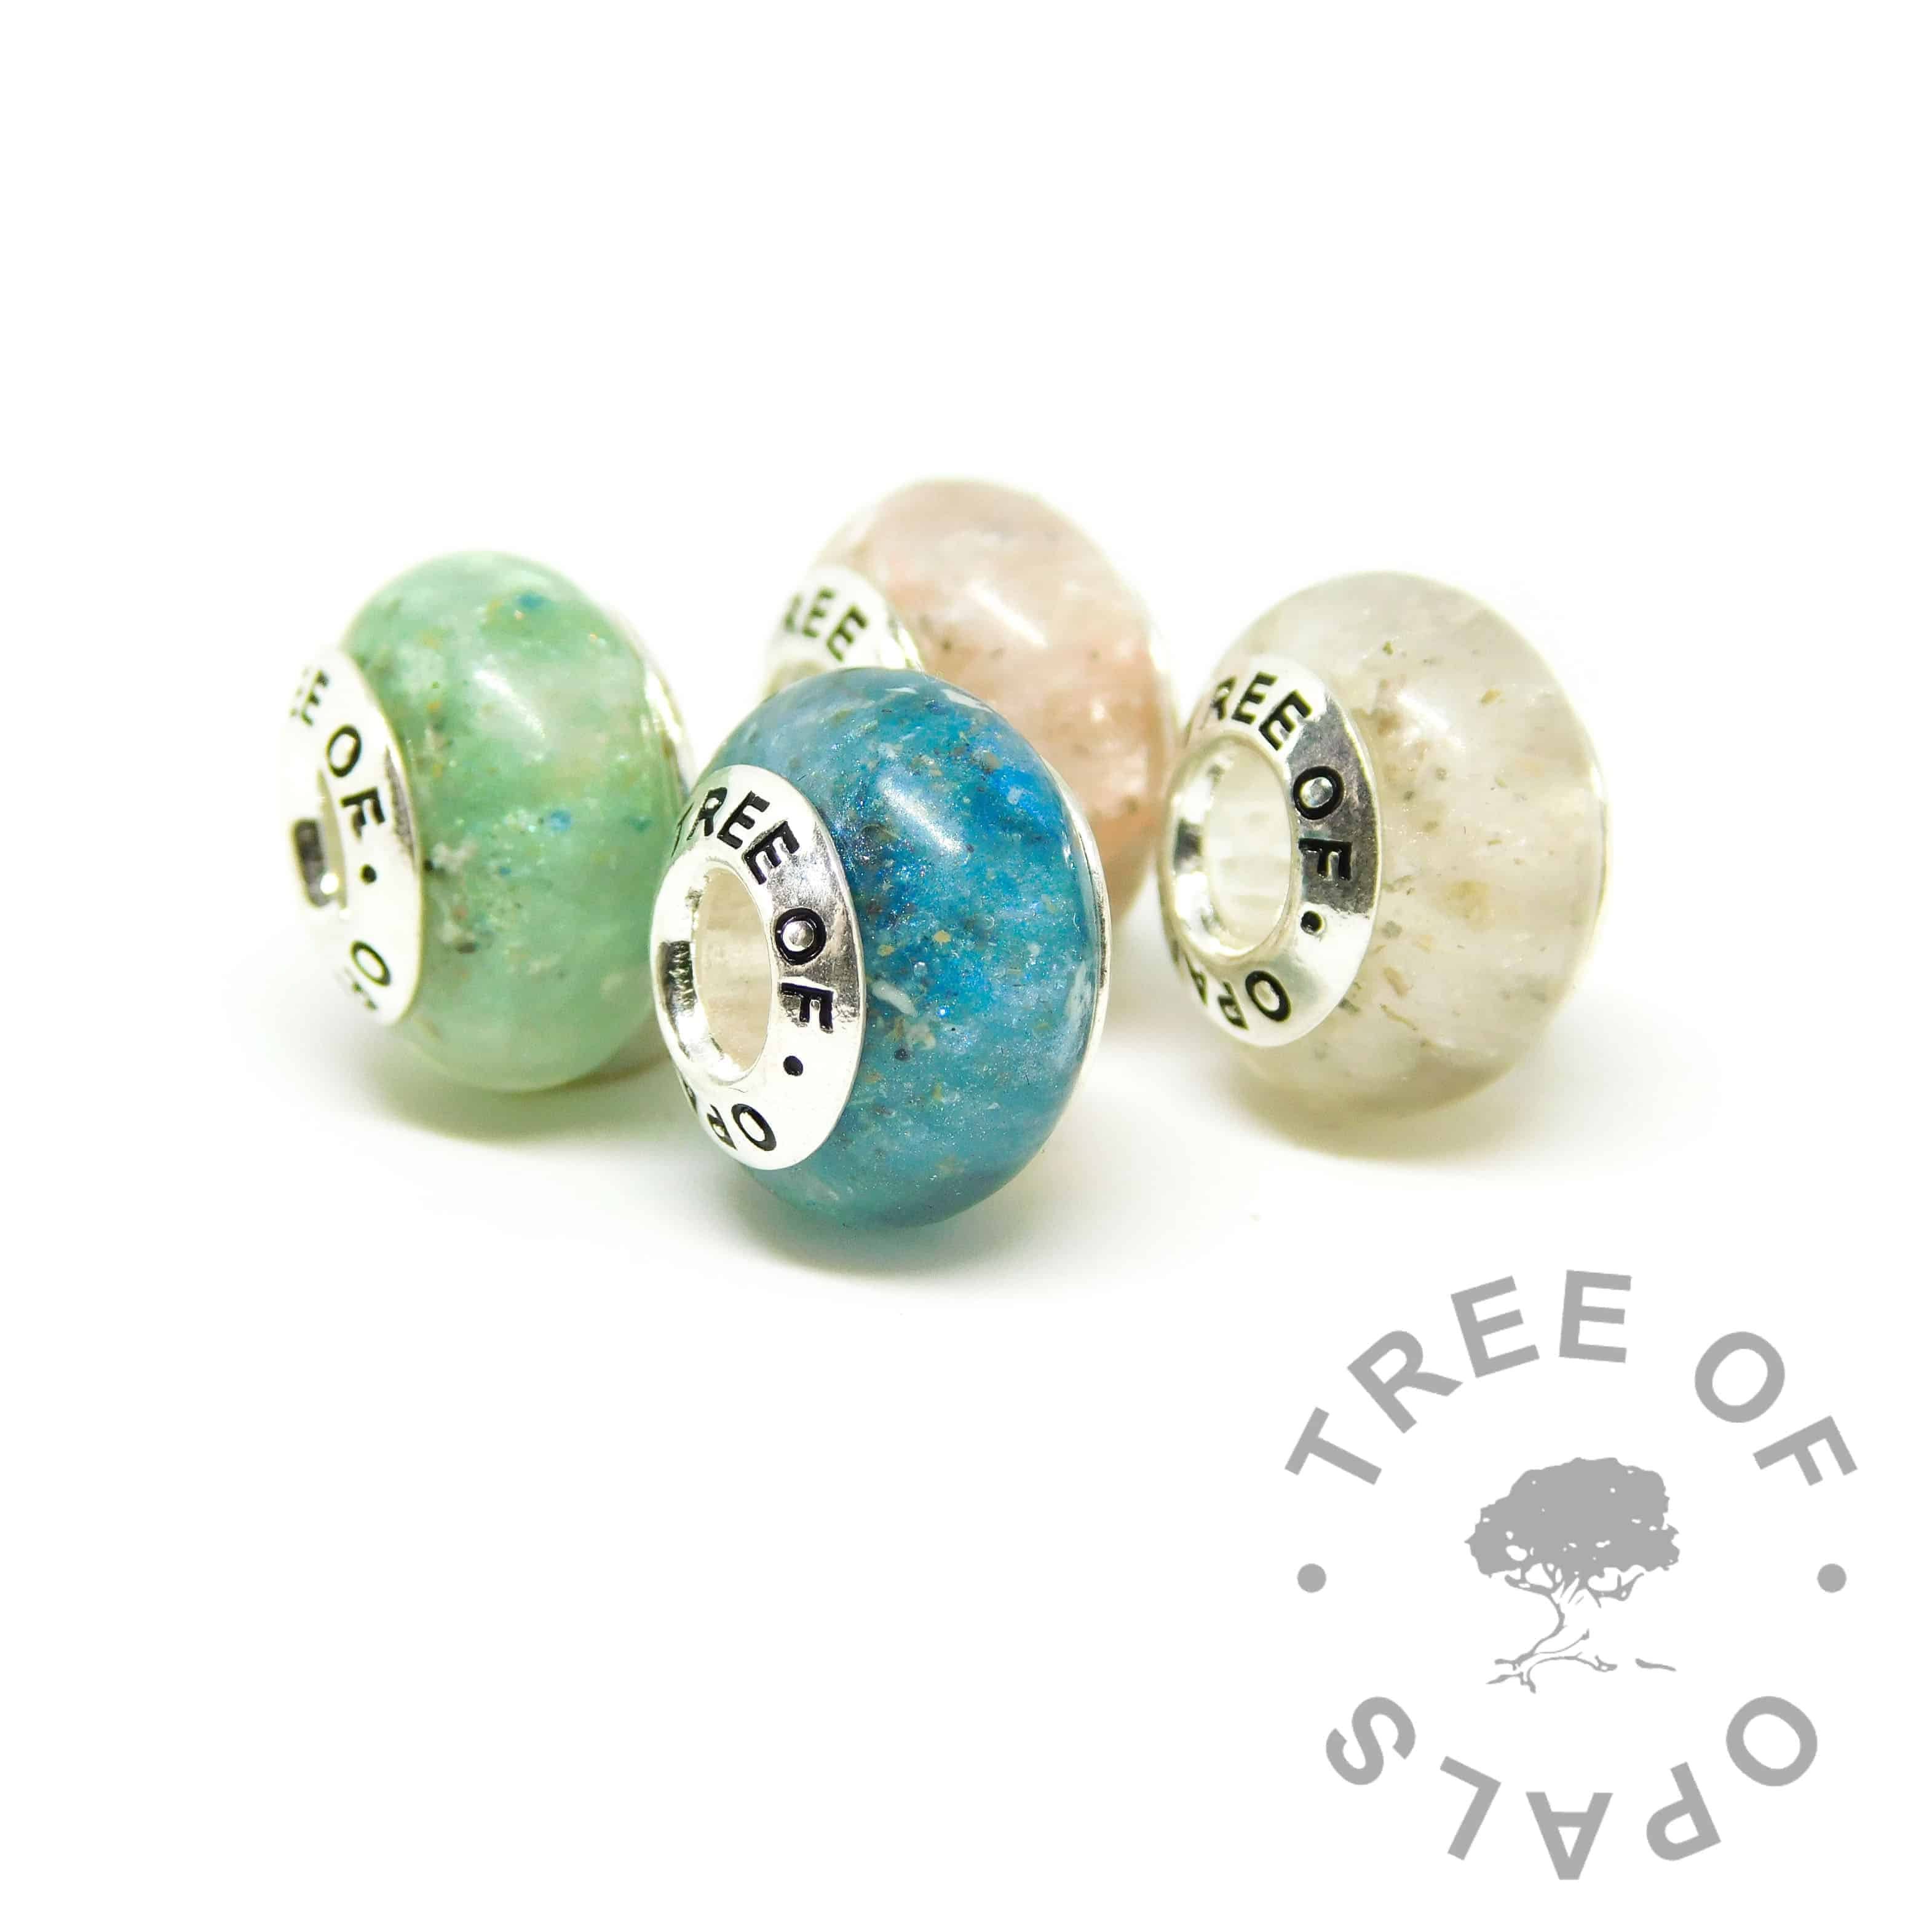 ashes jewellery charms - set of four resin charm beads in aqua, blue, pink and classic ashes